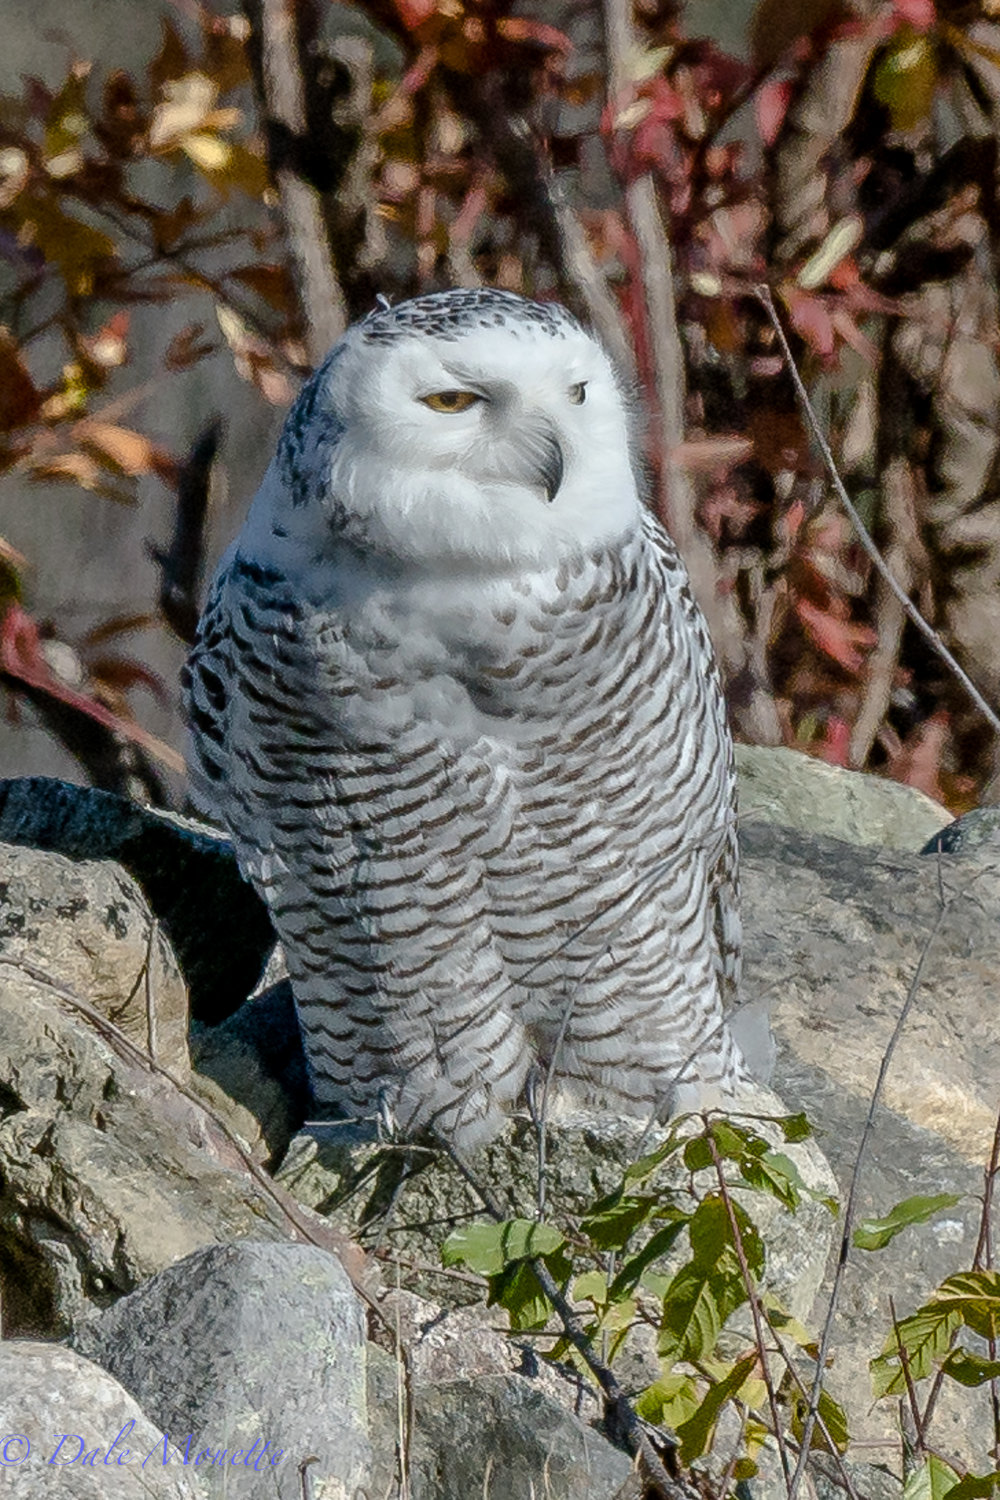 Im sad to report that this snowy owl is now is in a raptor rehab facility. The owl was not feeding ,was captured and has been hospitalized until she can be released again.  She also had a foot injury and a sprained wing muscle. Lets hope within a couple weeks she is back out in the wild where she belongs.  11/16/17